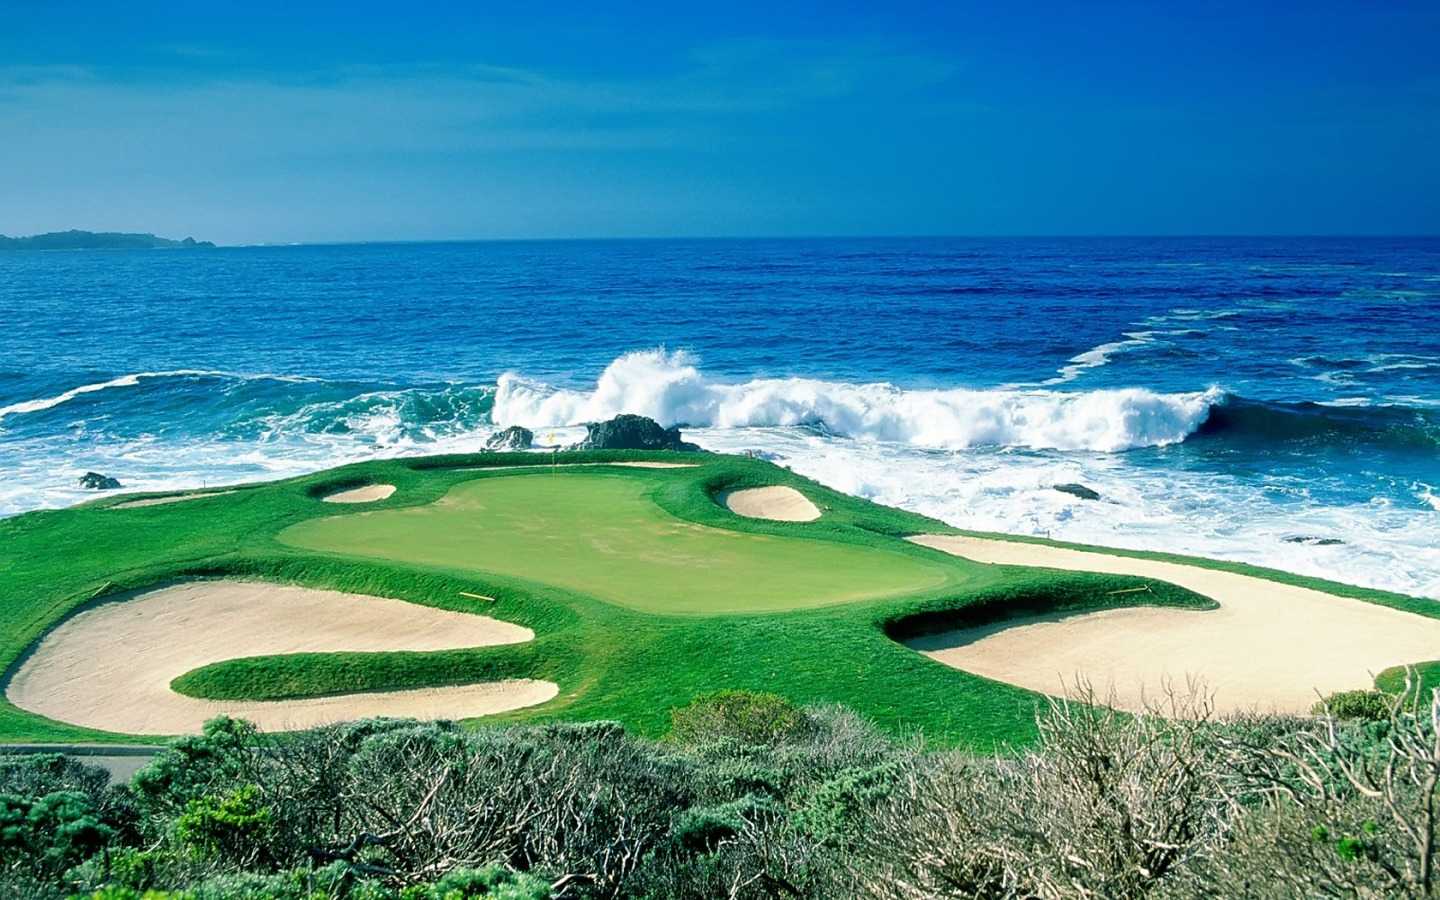 Golf Course Wallpaper Sports Wallpapers In Jpg Format For Free